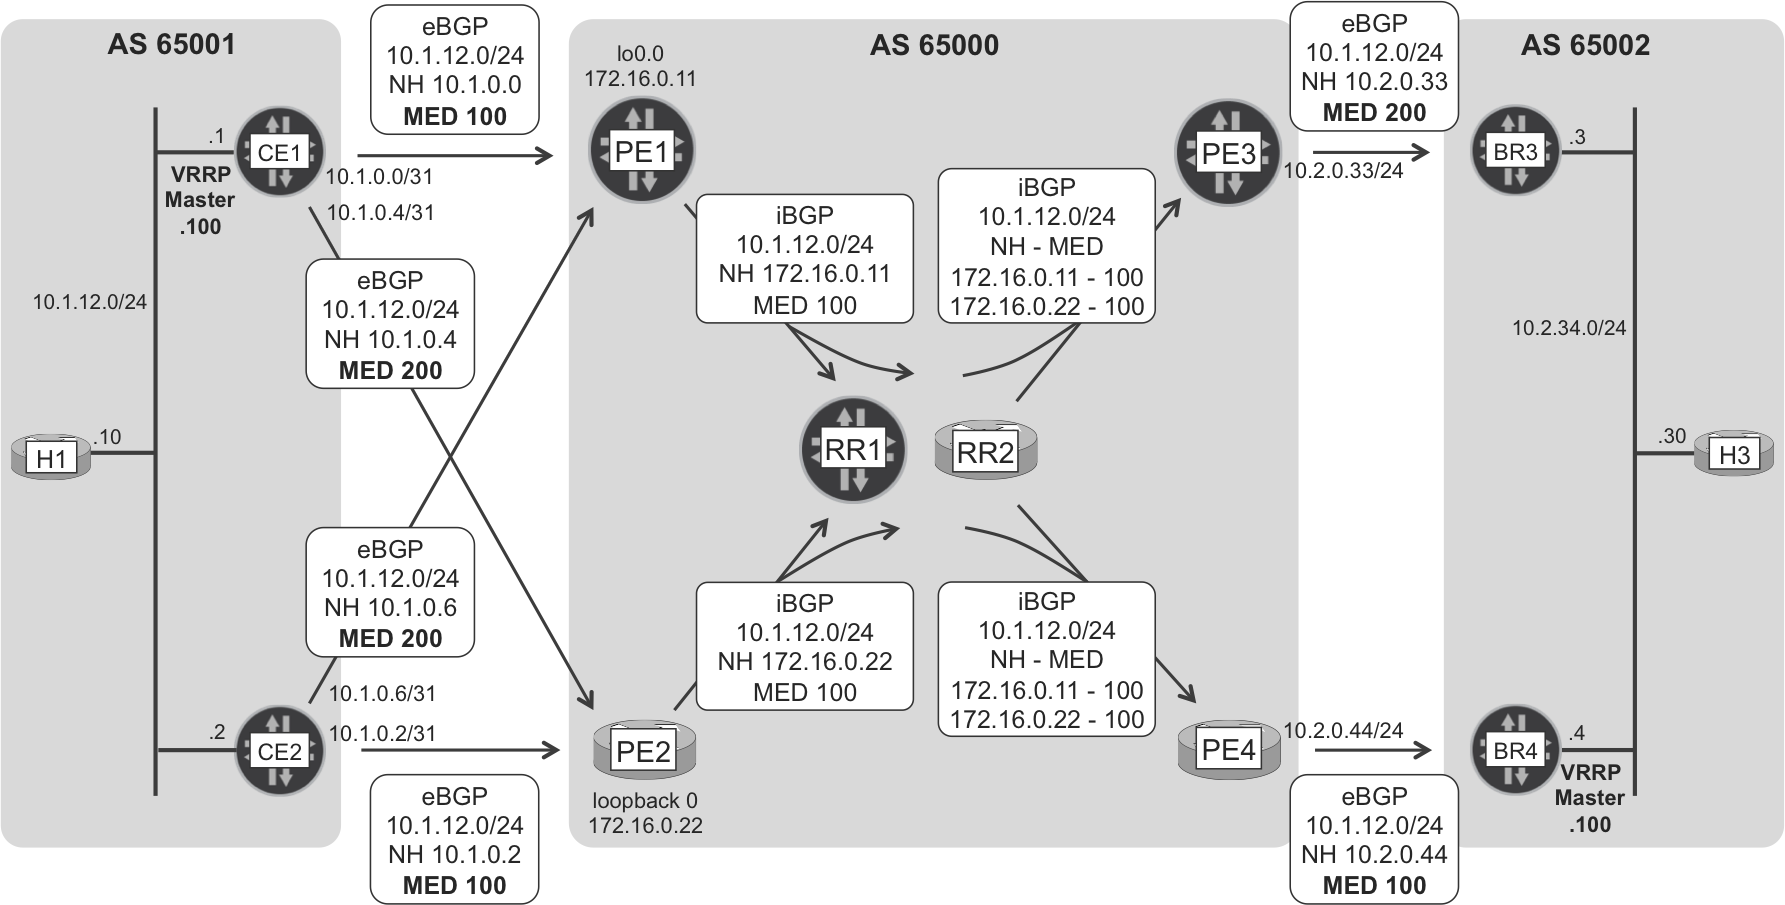 Internet eBGP and iBGP route signaling—H1's subnet